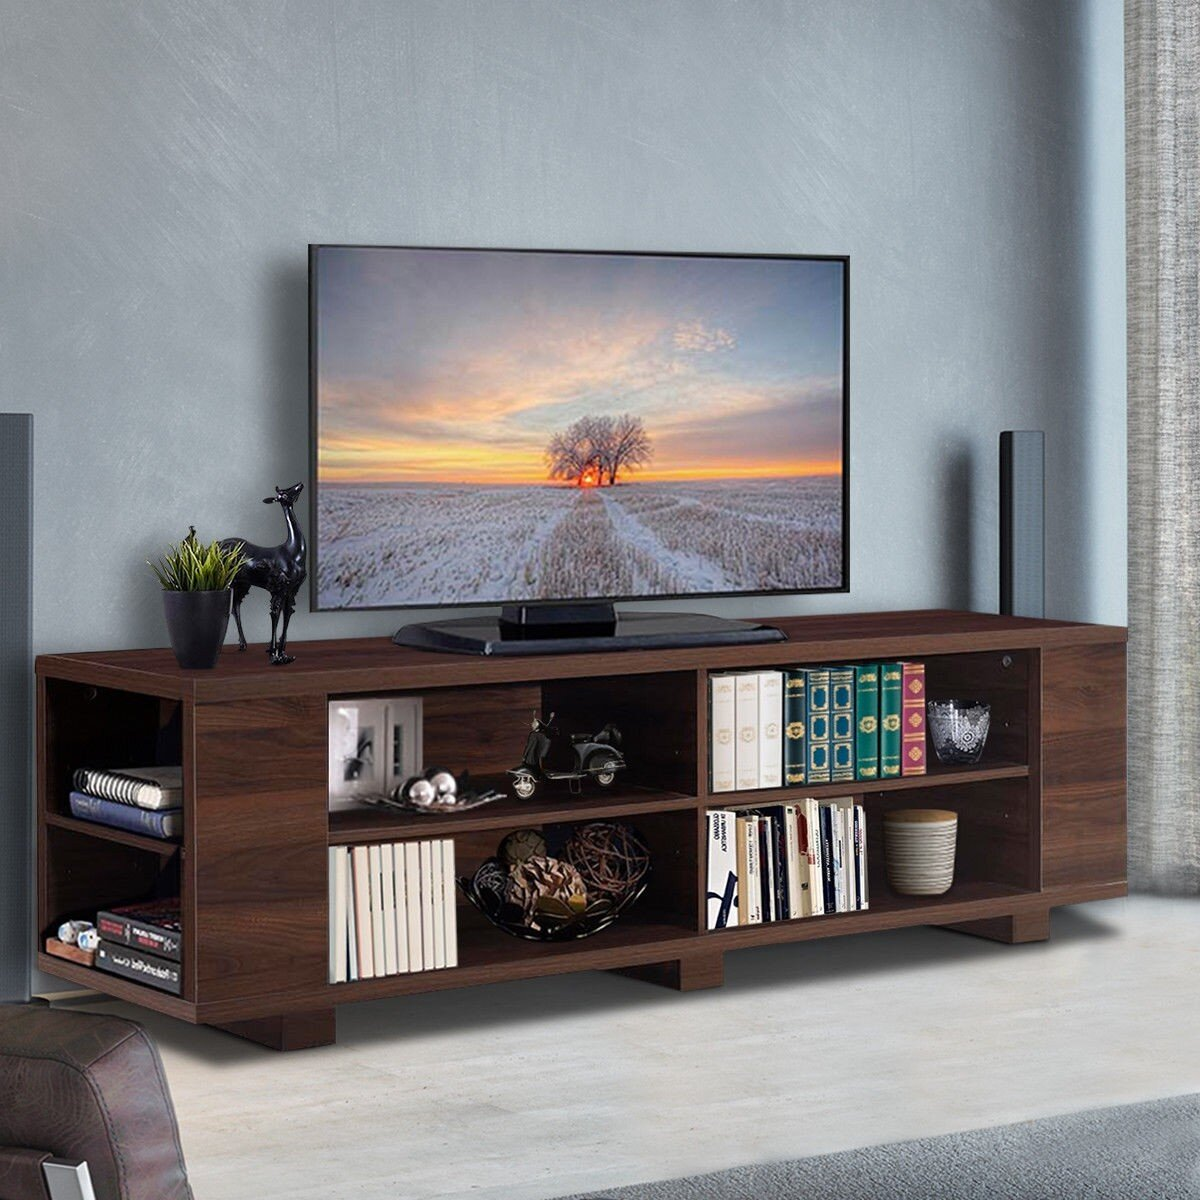 60 69 Inch With Flat Screen Mount Tv Stands Entertainment Centers You Ll Love In 2021 Wayfair